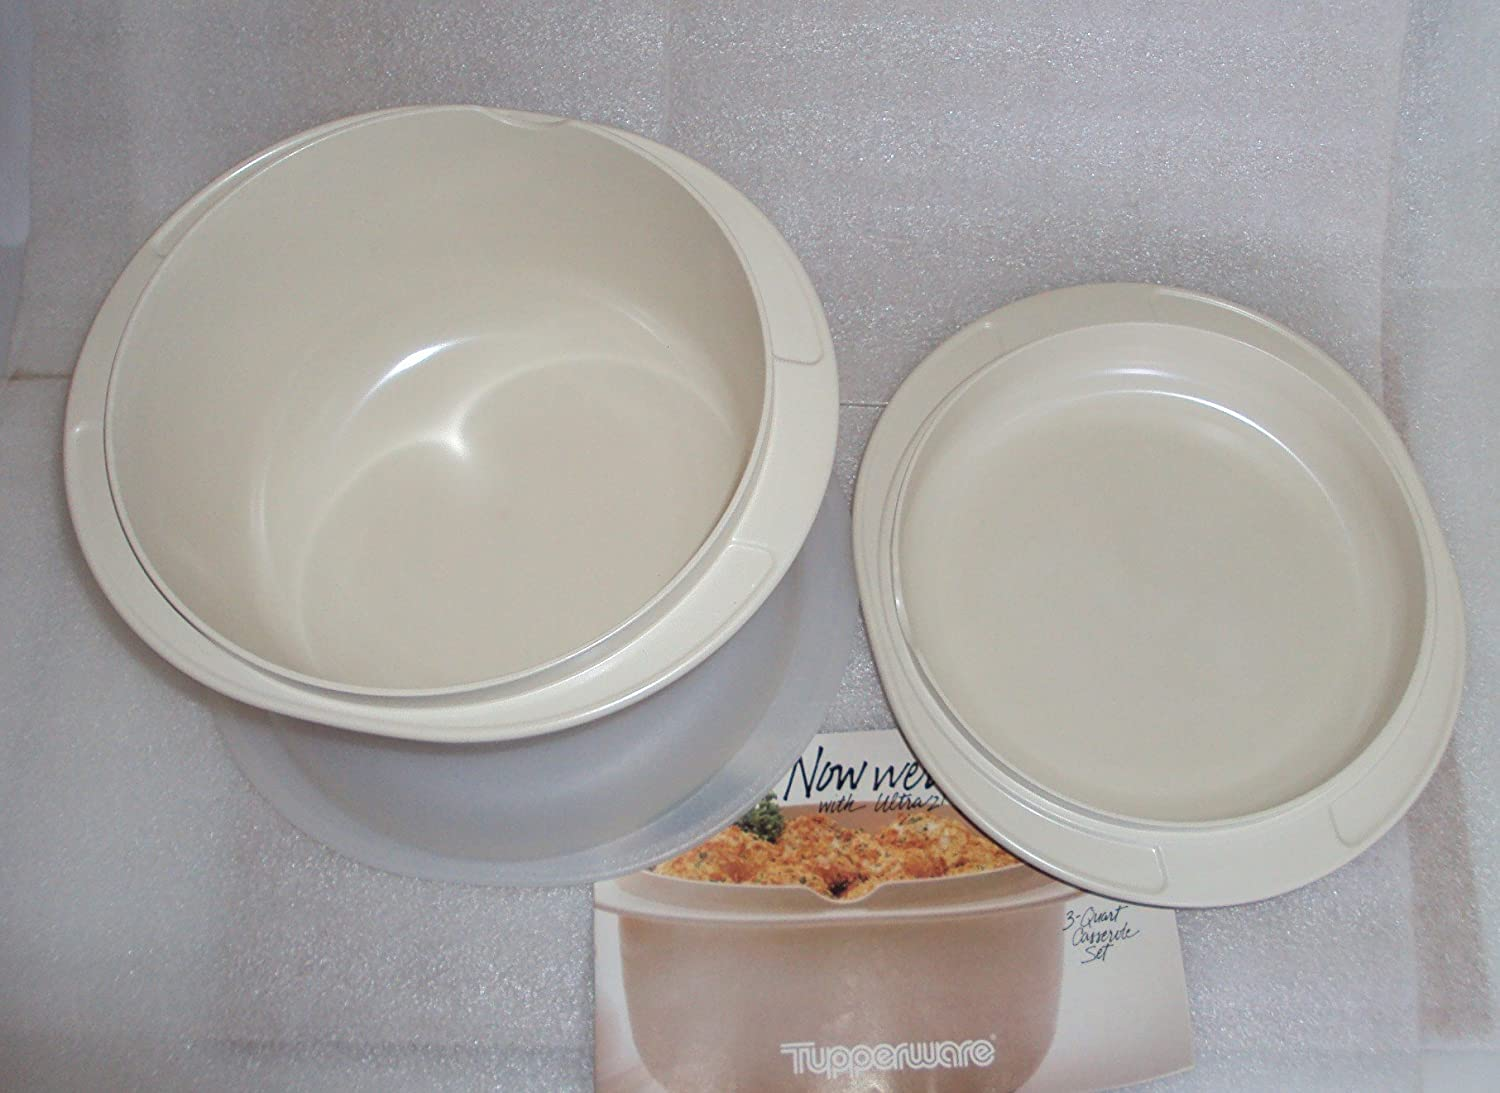 Tupperware Ultra 21 3 Pc Cookware Set, 3 Qt Casserole